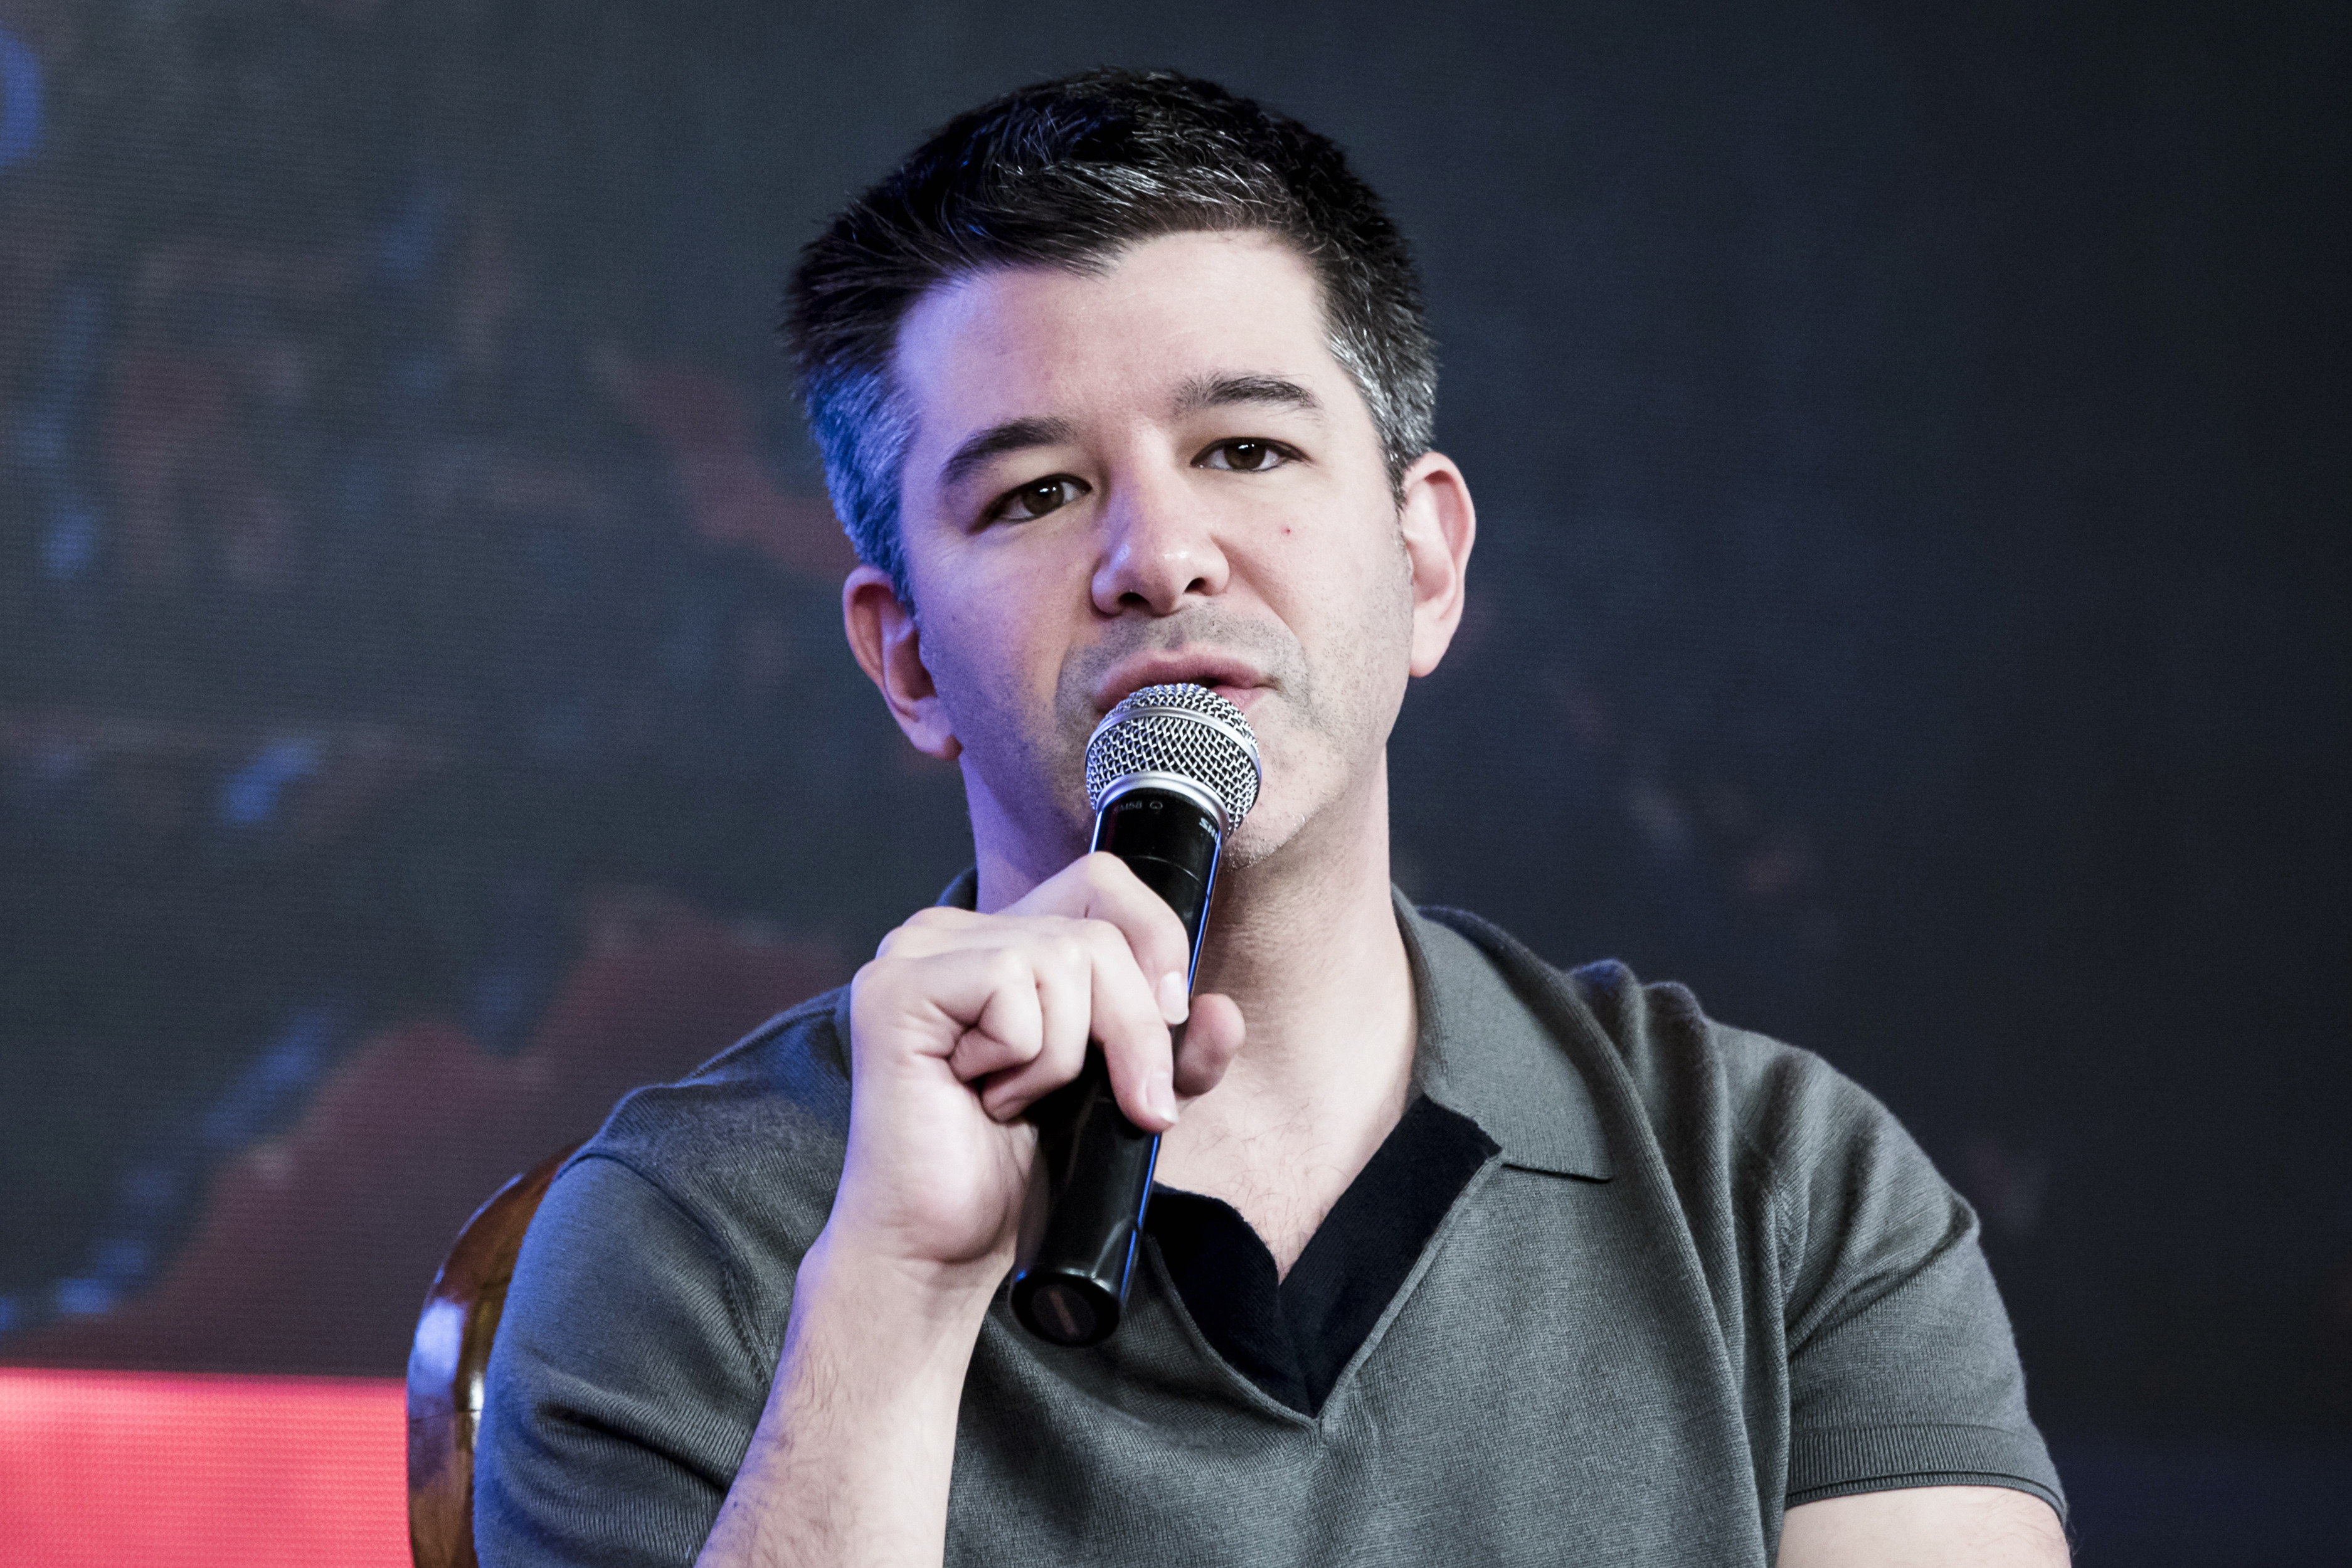 Travis Kalanick, co-founder and chief executive officer of Uber Technologies Inc., speaks during th TiE Global Entrepeneurs Summit in New Delhi, India, on Friday, Dec. 16, 2016.